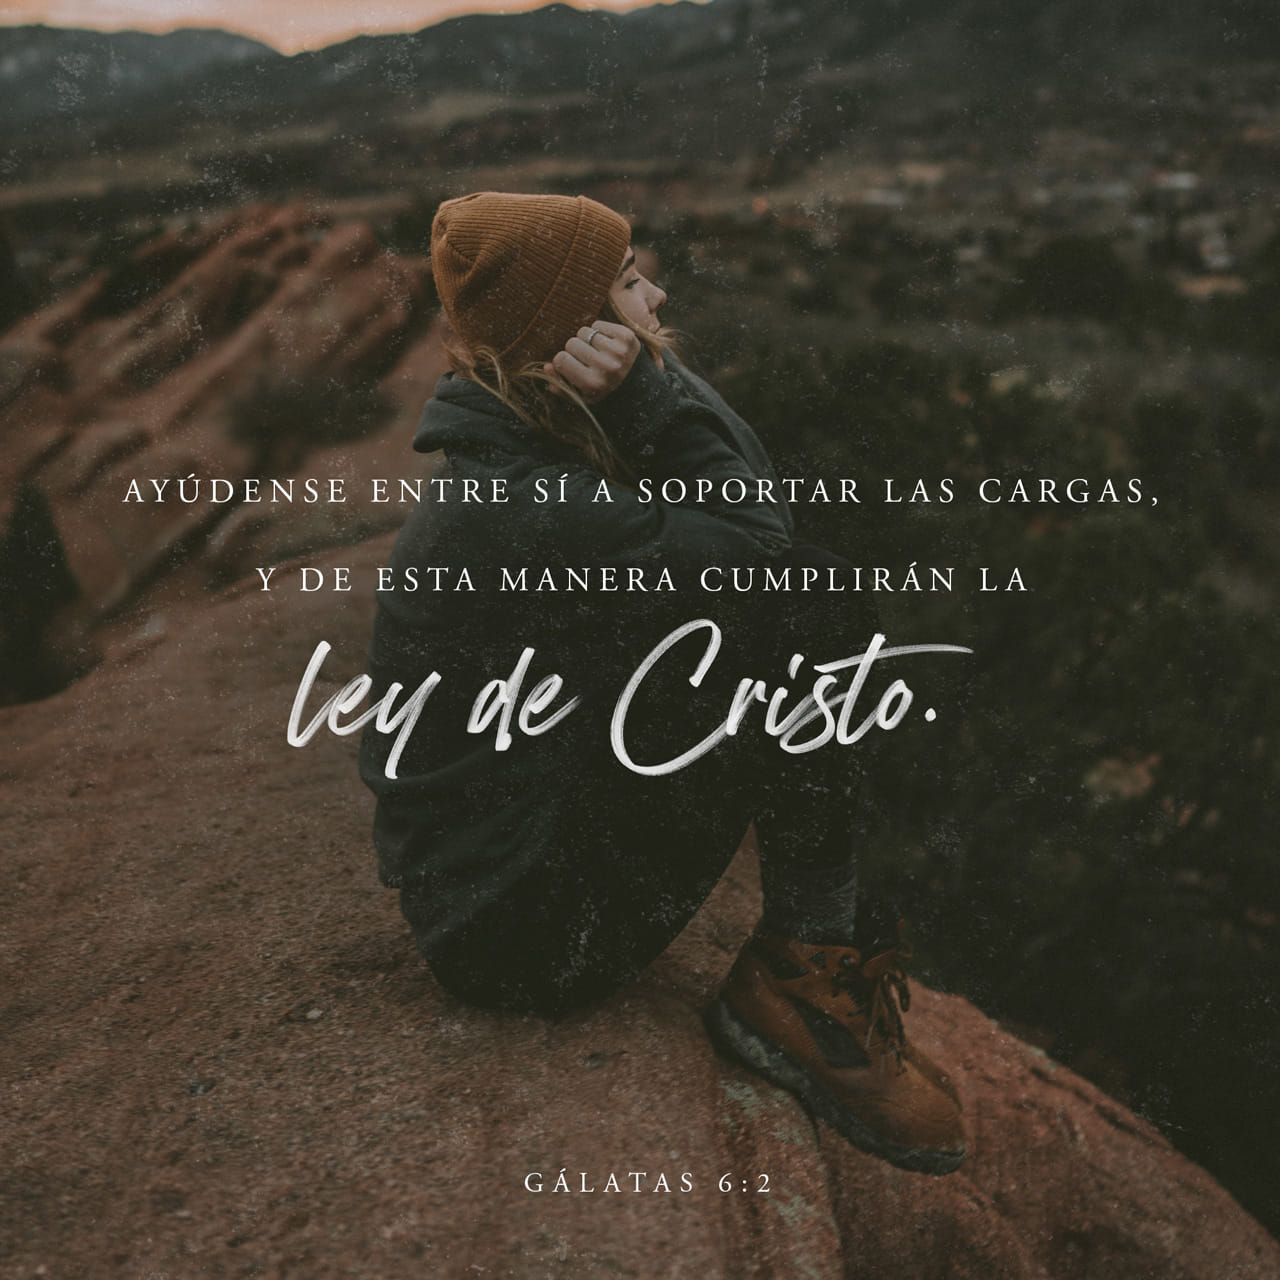 Galatians 6:2 Bear ye one another's burdens, and so fulfil the law of Christ. | King James Version (KJV) | Descargar la Biblia App ahora